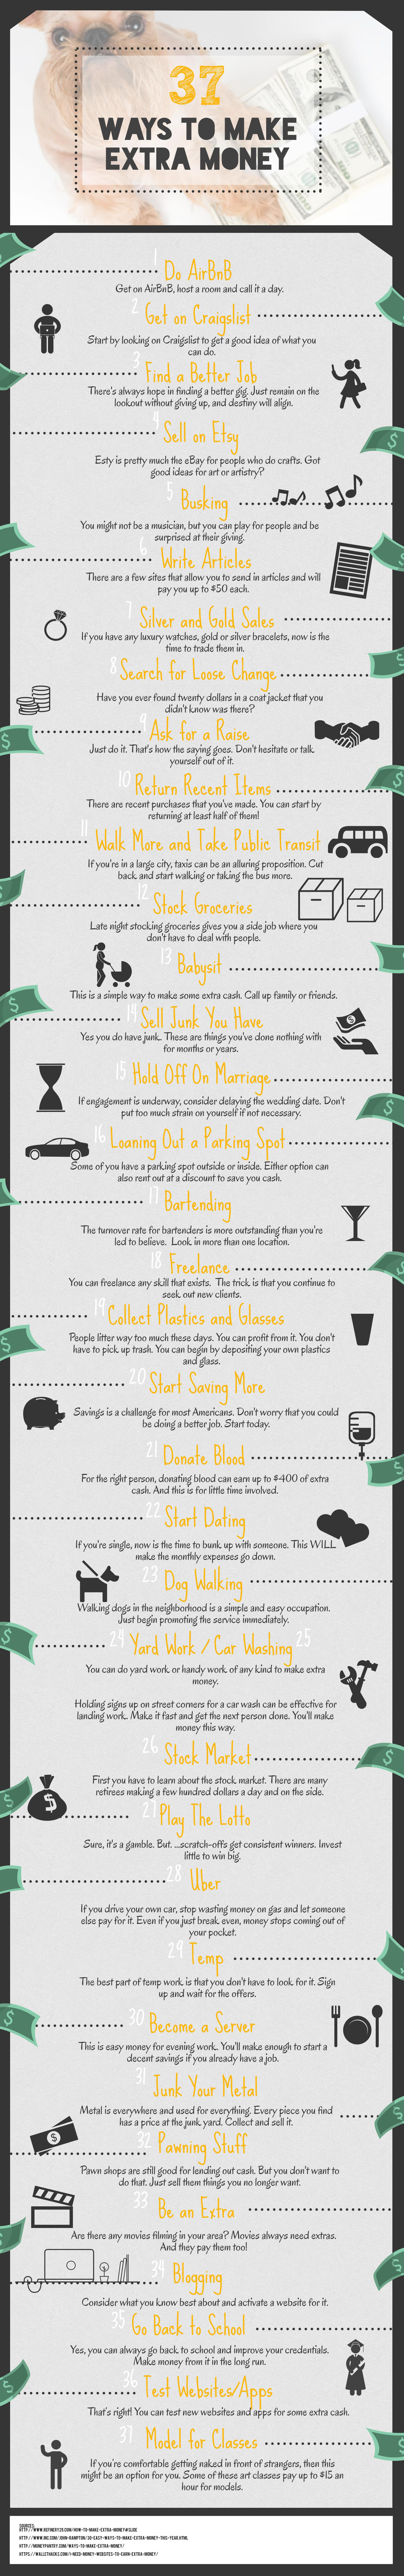 37 Ways to Make Extra Money - Infographic